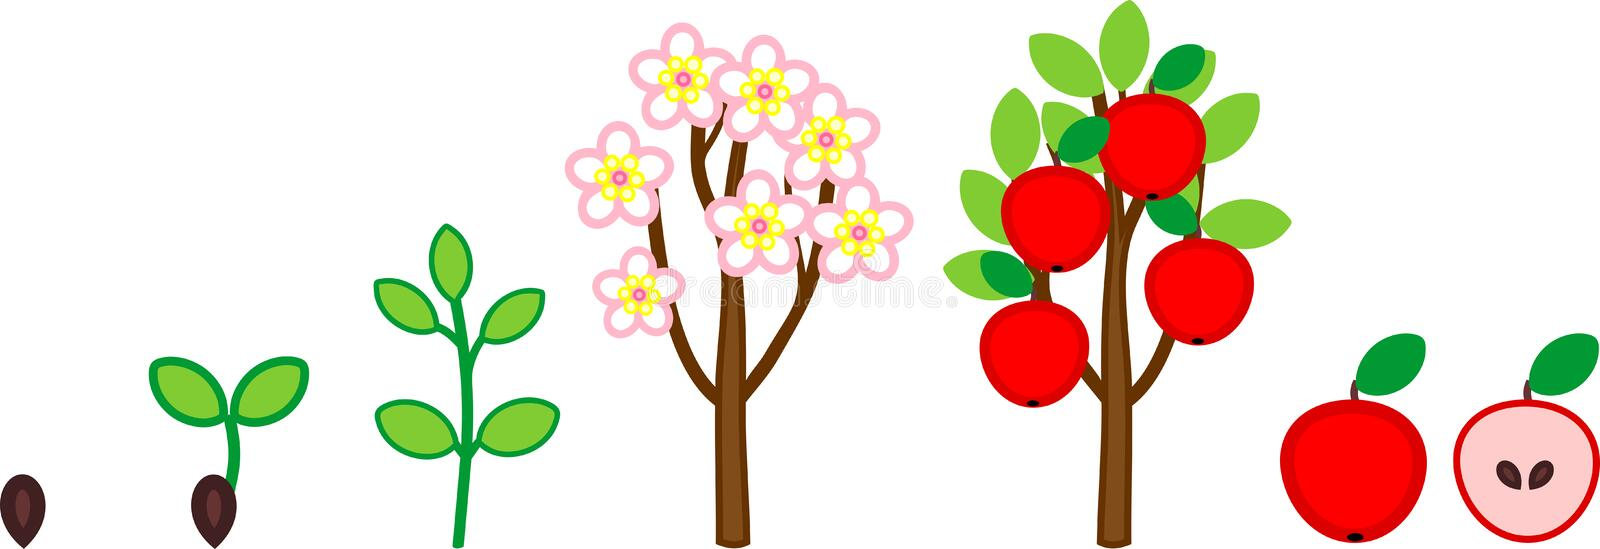 Life cycle of apple tree. Plant growth stage from seed to tree with fruits. Isolated on white background vector illustration